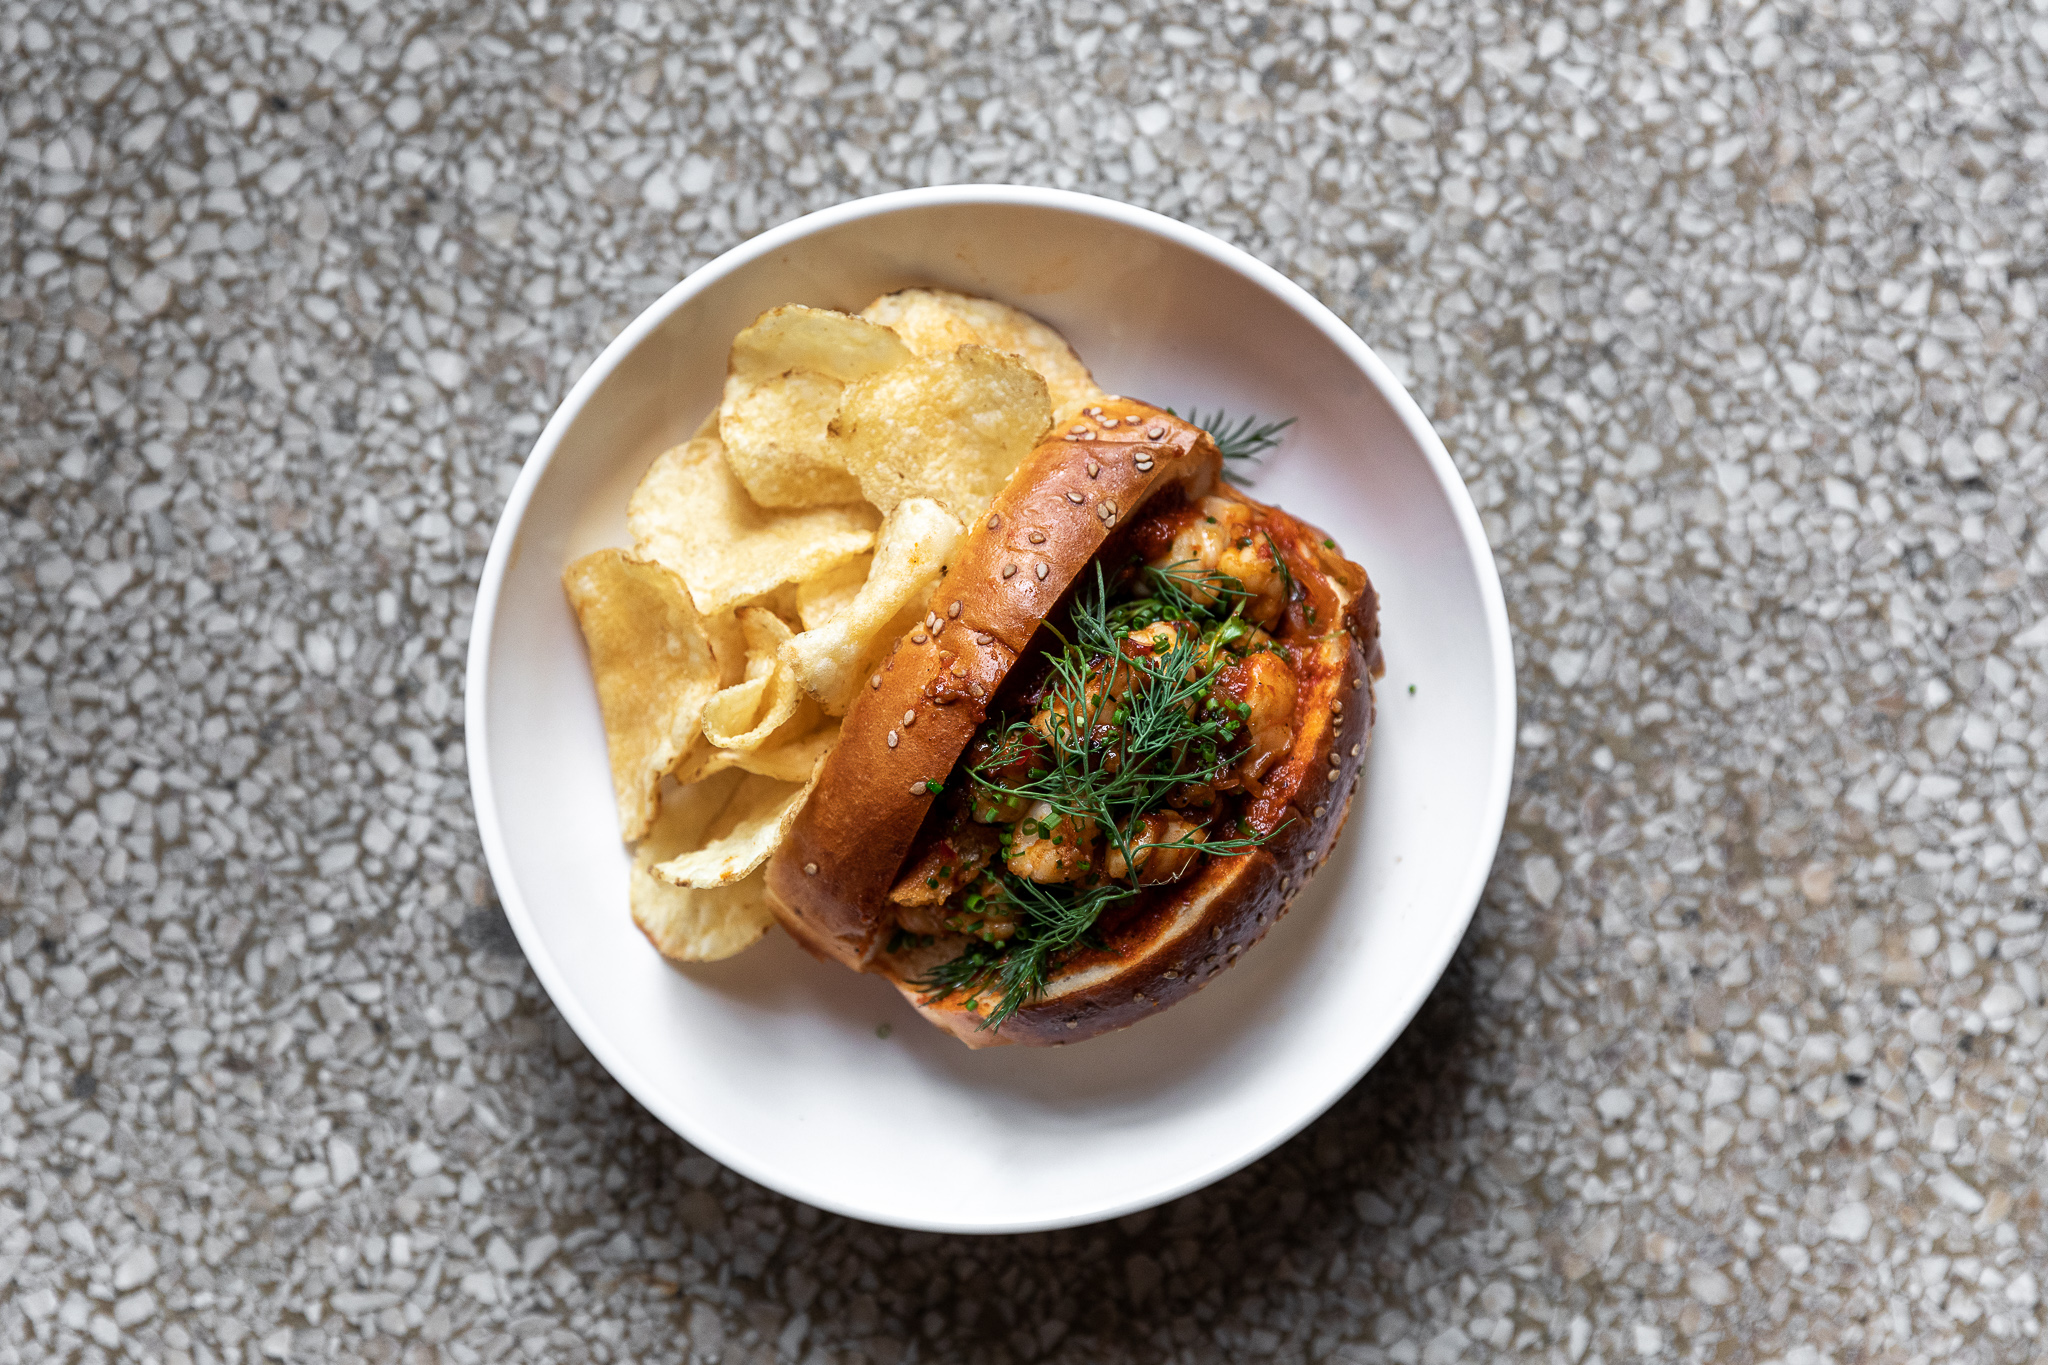 A shrimp roll in a squishy, golden brown bun with sesame seeds, a red shrimp filling and green herbs. It's sitting on a white plate next to a pile of potato chips.